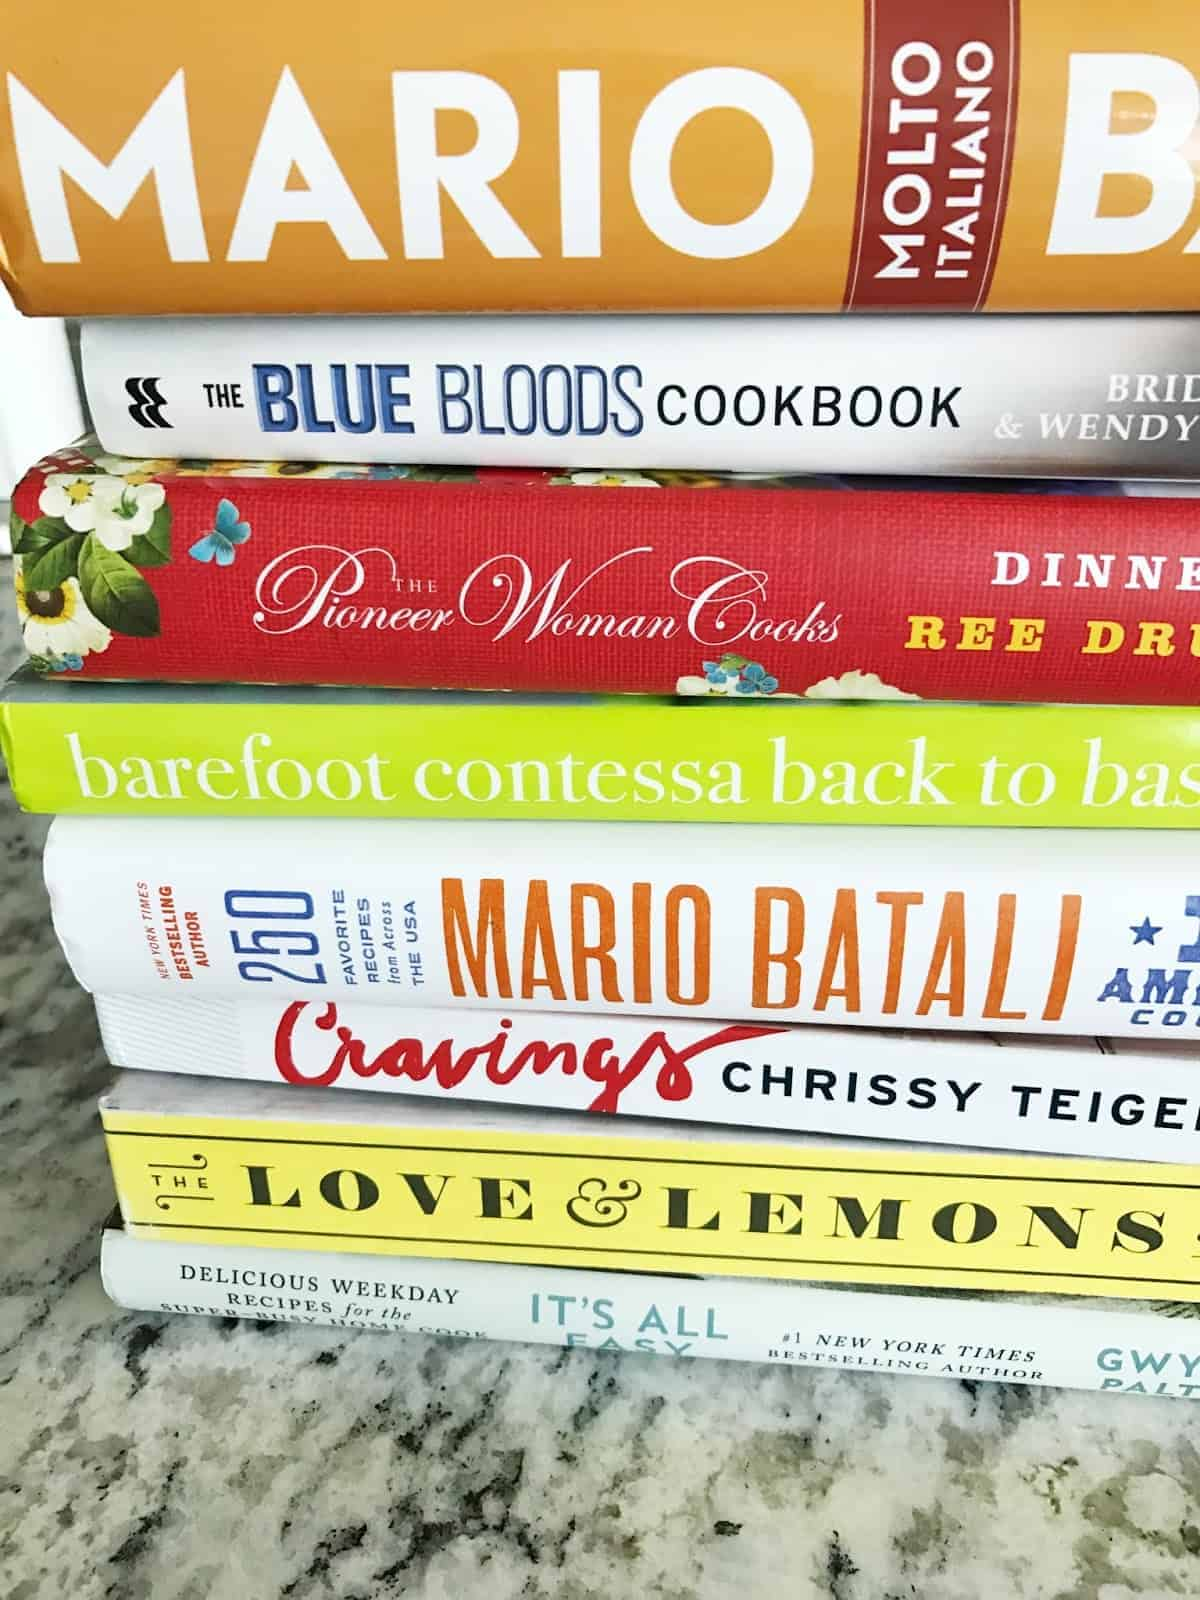 Favorite Cookbooks (so far anyway)